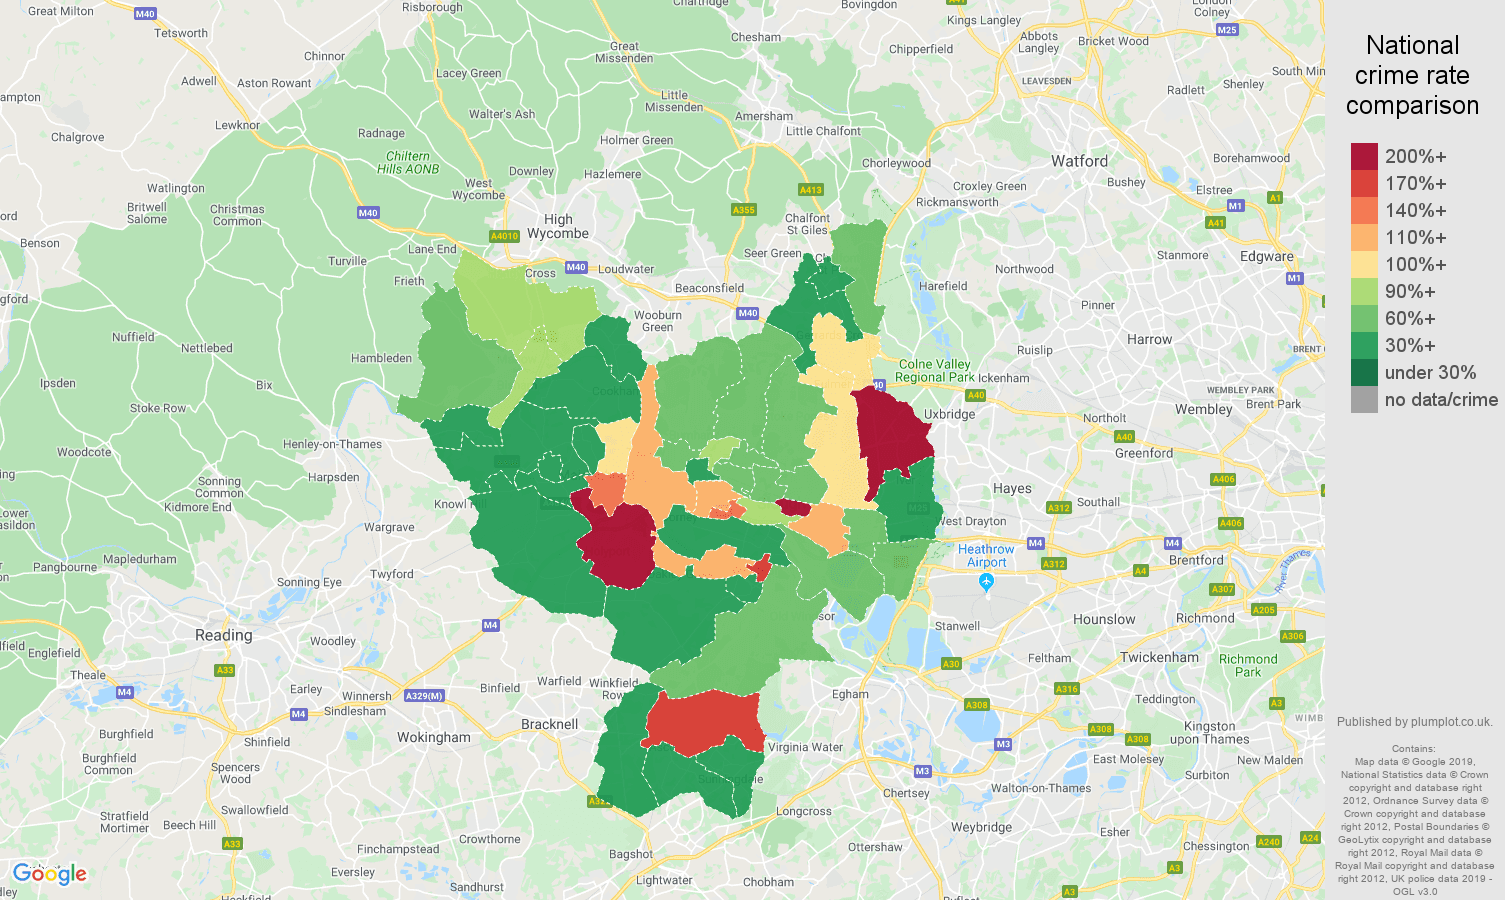 Slough other theft crime rate comparison map